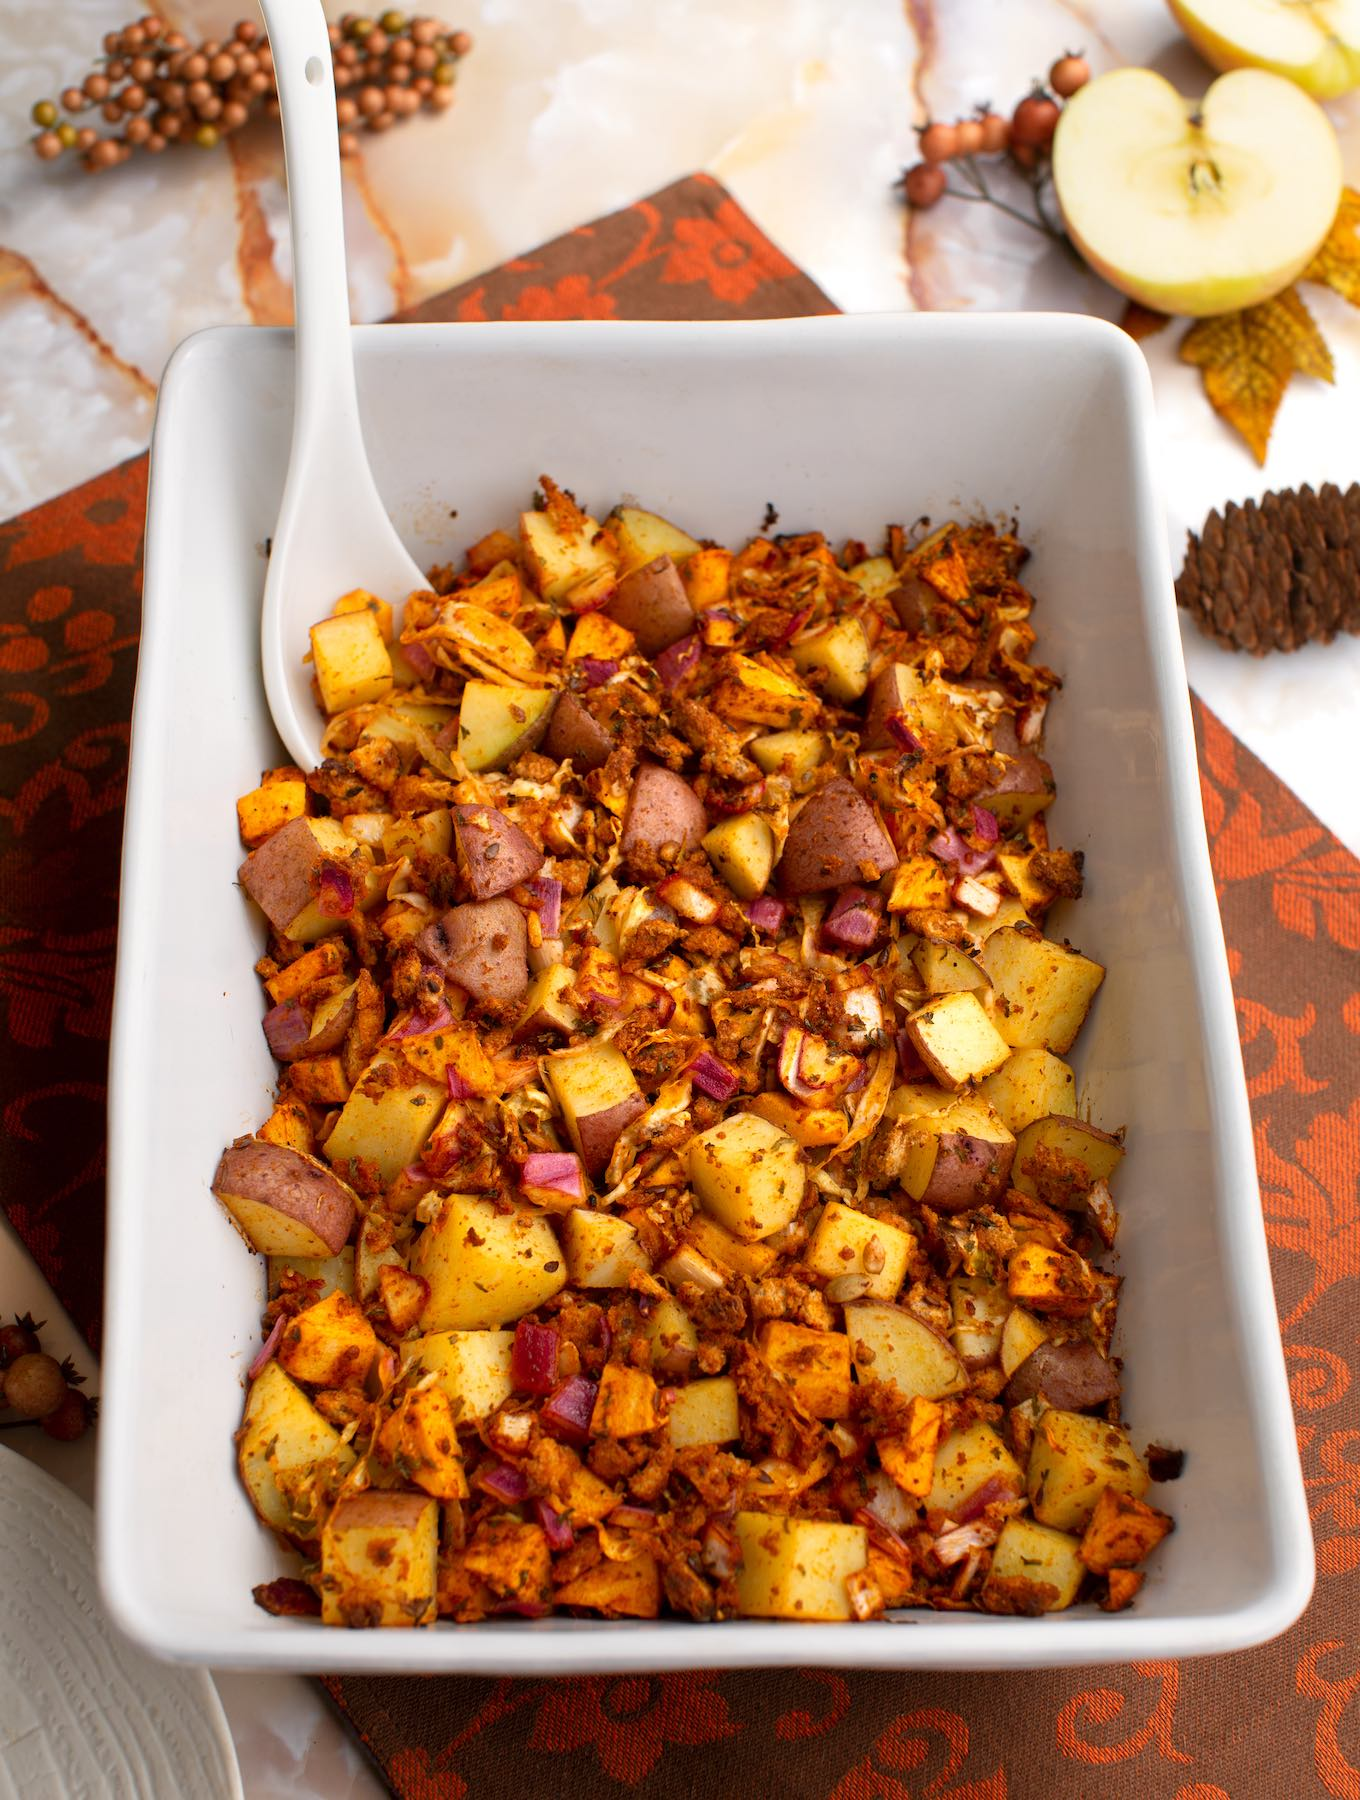 Potato, apple, & sauerkraut stuffing